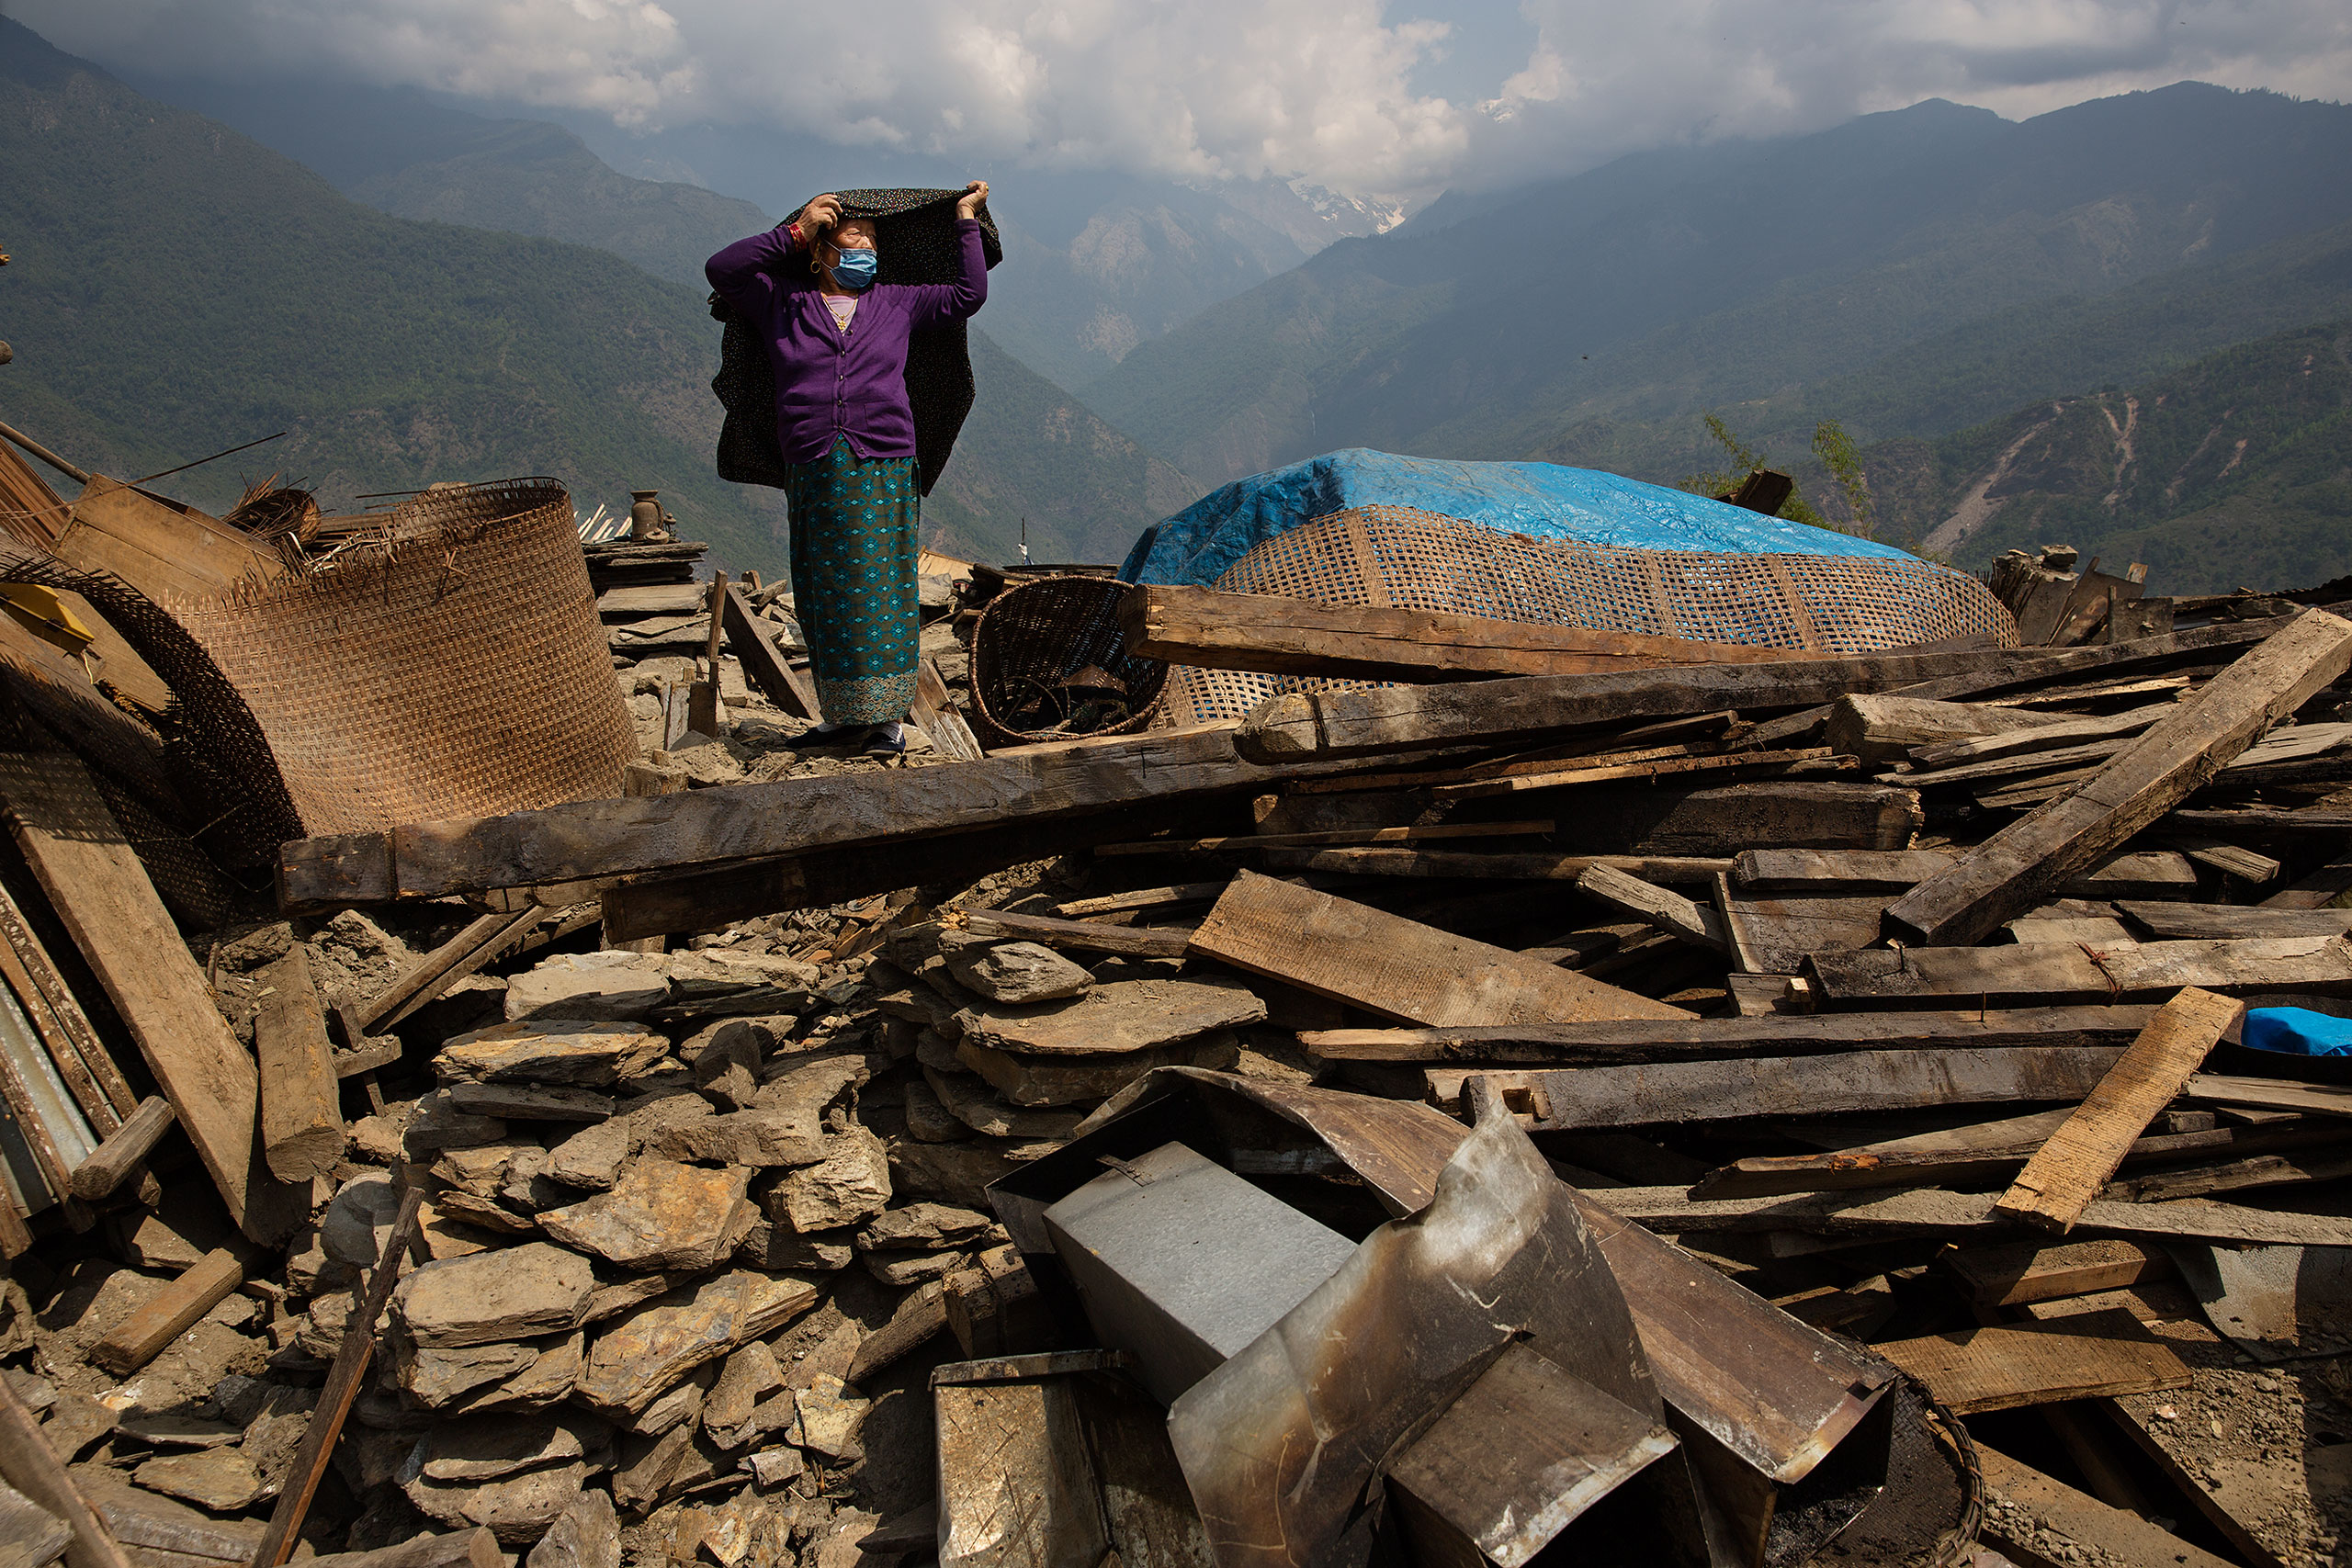 A villager stands among the ruins of the destroyed houses in Barpak, Nepal, May 6, 2015.